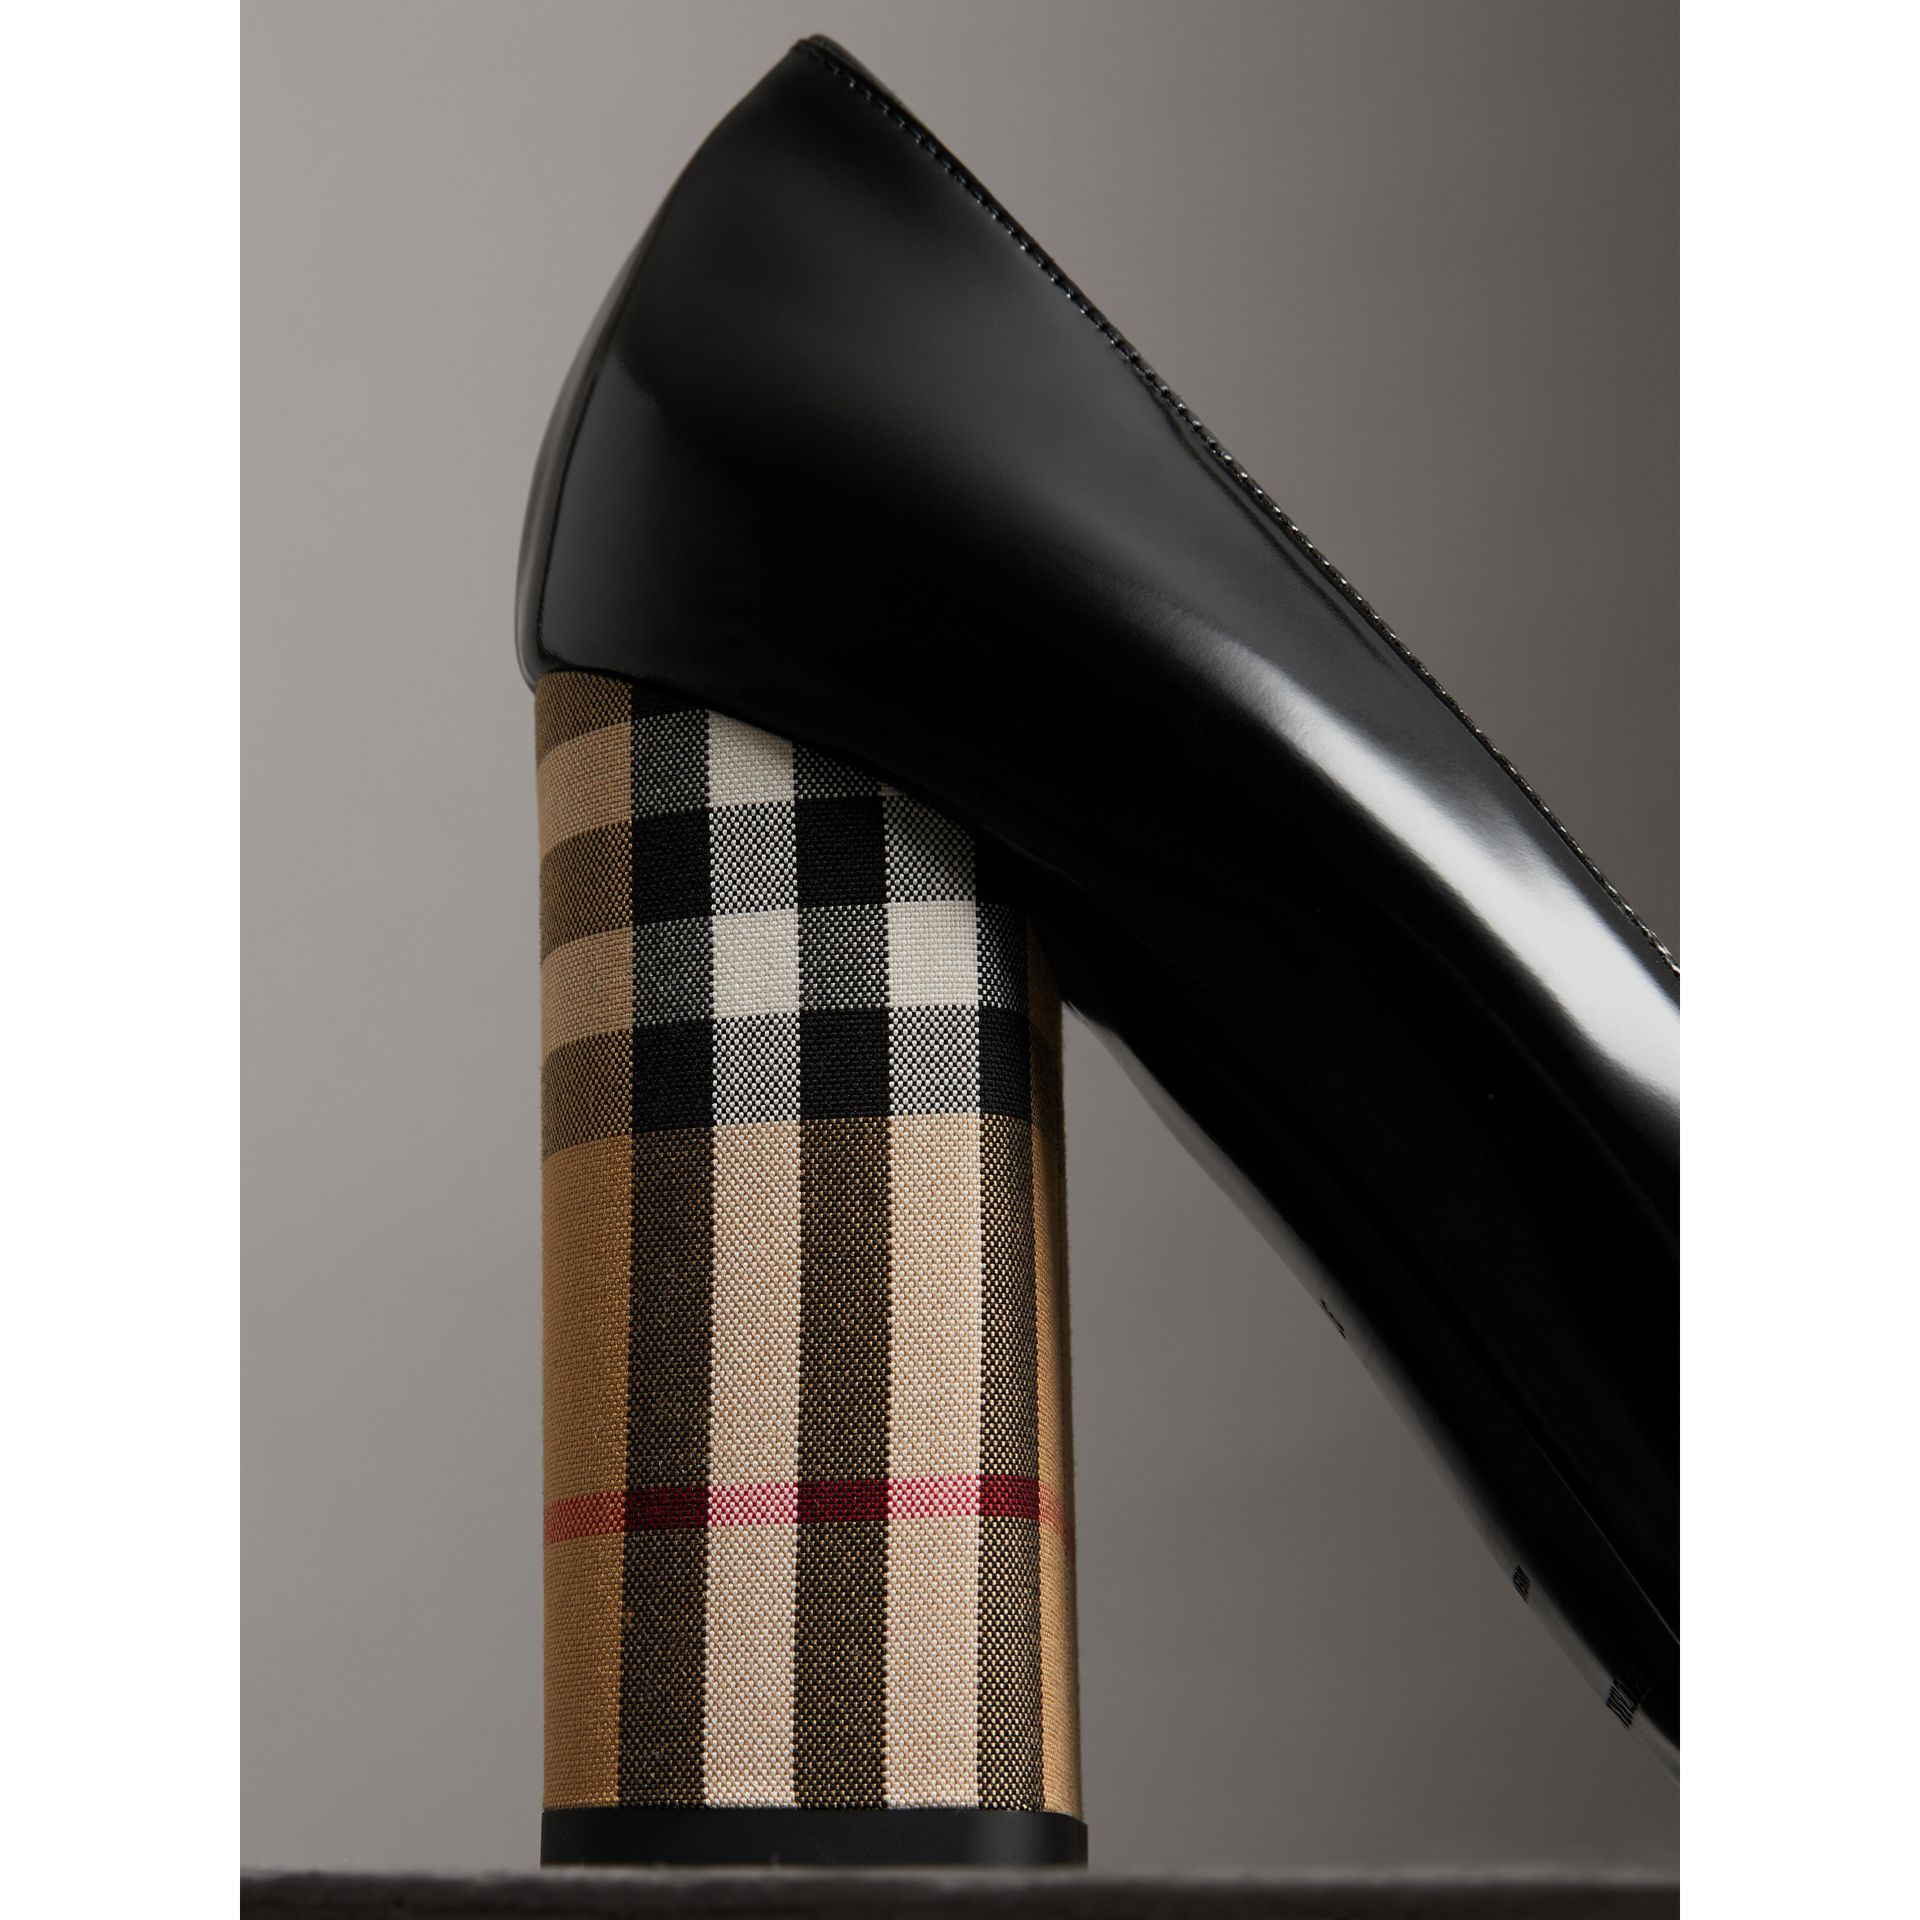 Patent Leather and Vintage Check Block-heel Pumps in Black - Women | Burberry Singapore - gallery image 1